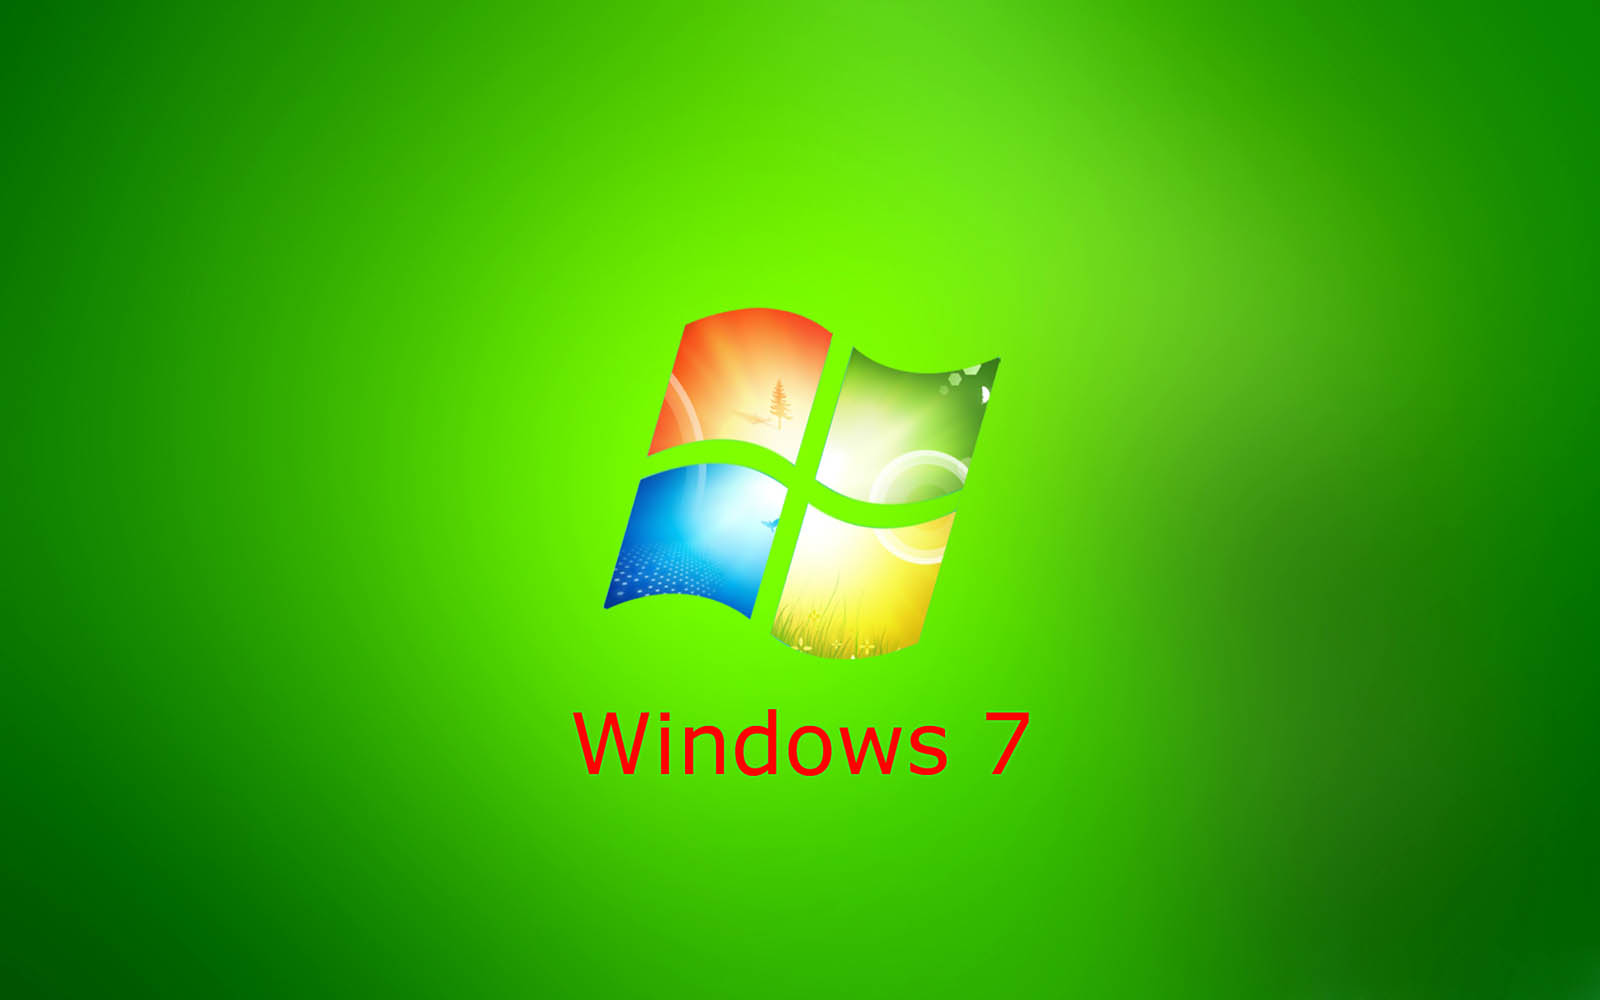 Wallpapers Green Windows 7 Wallpapers